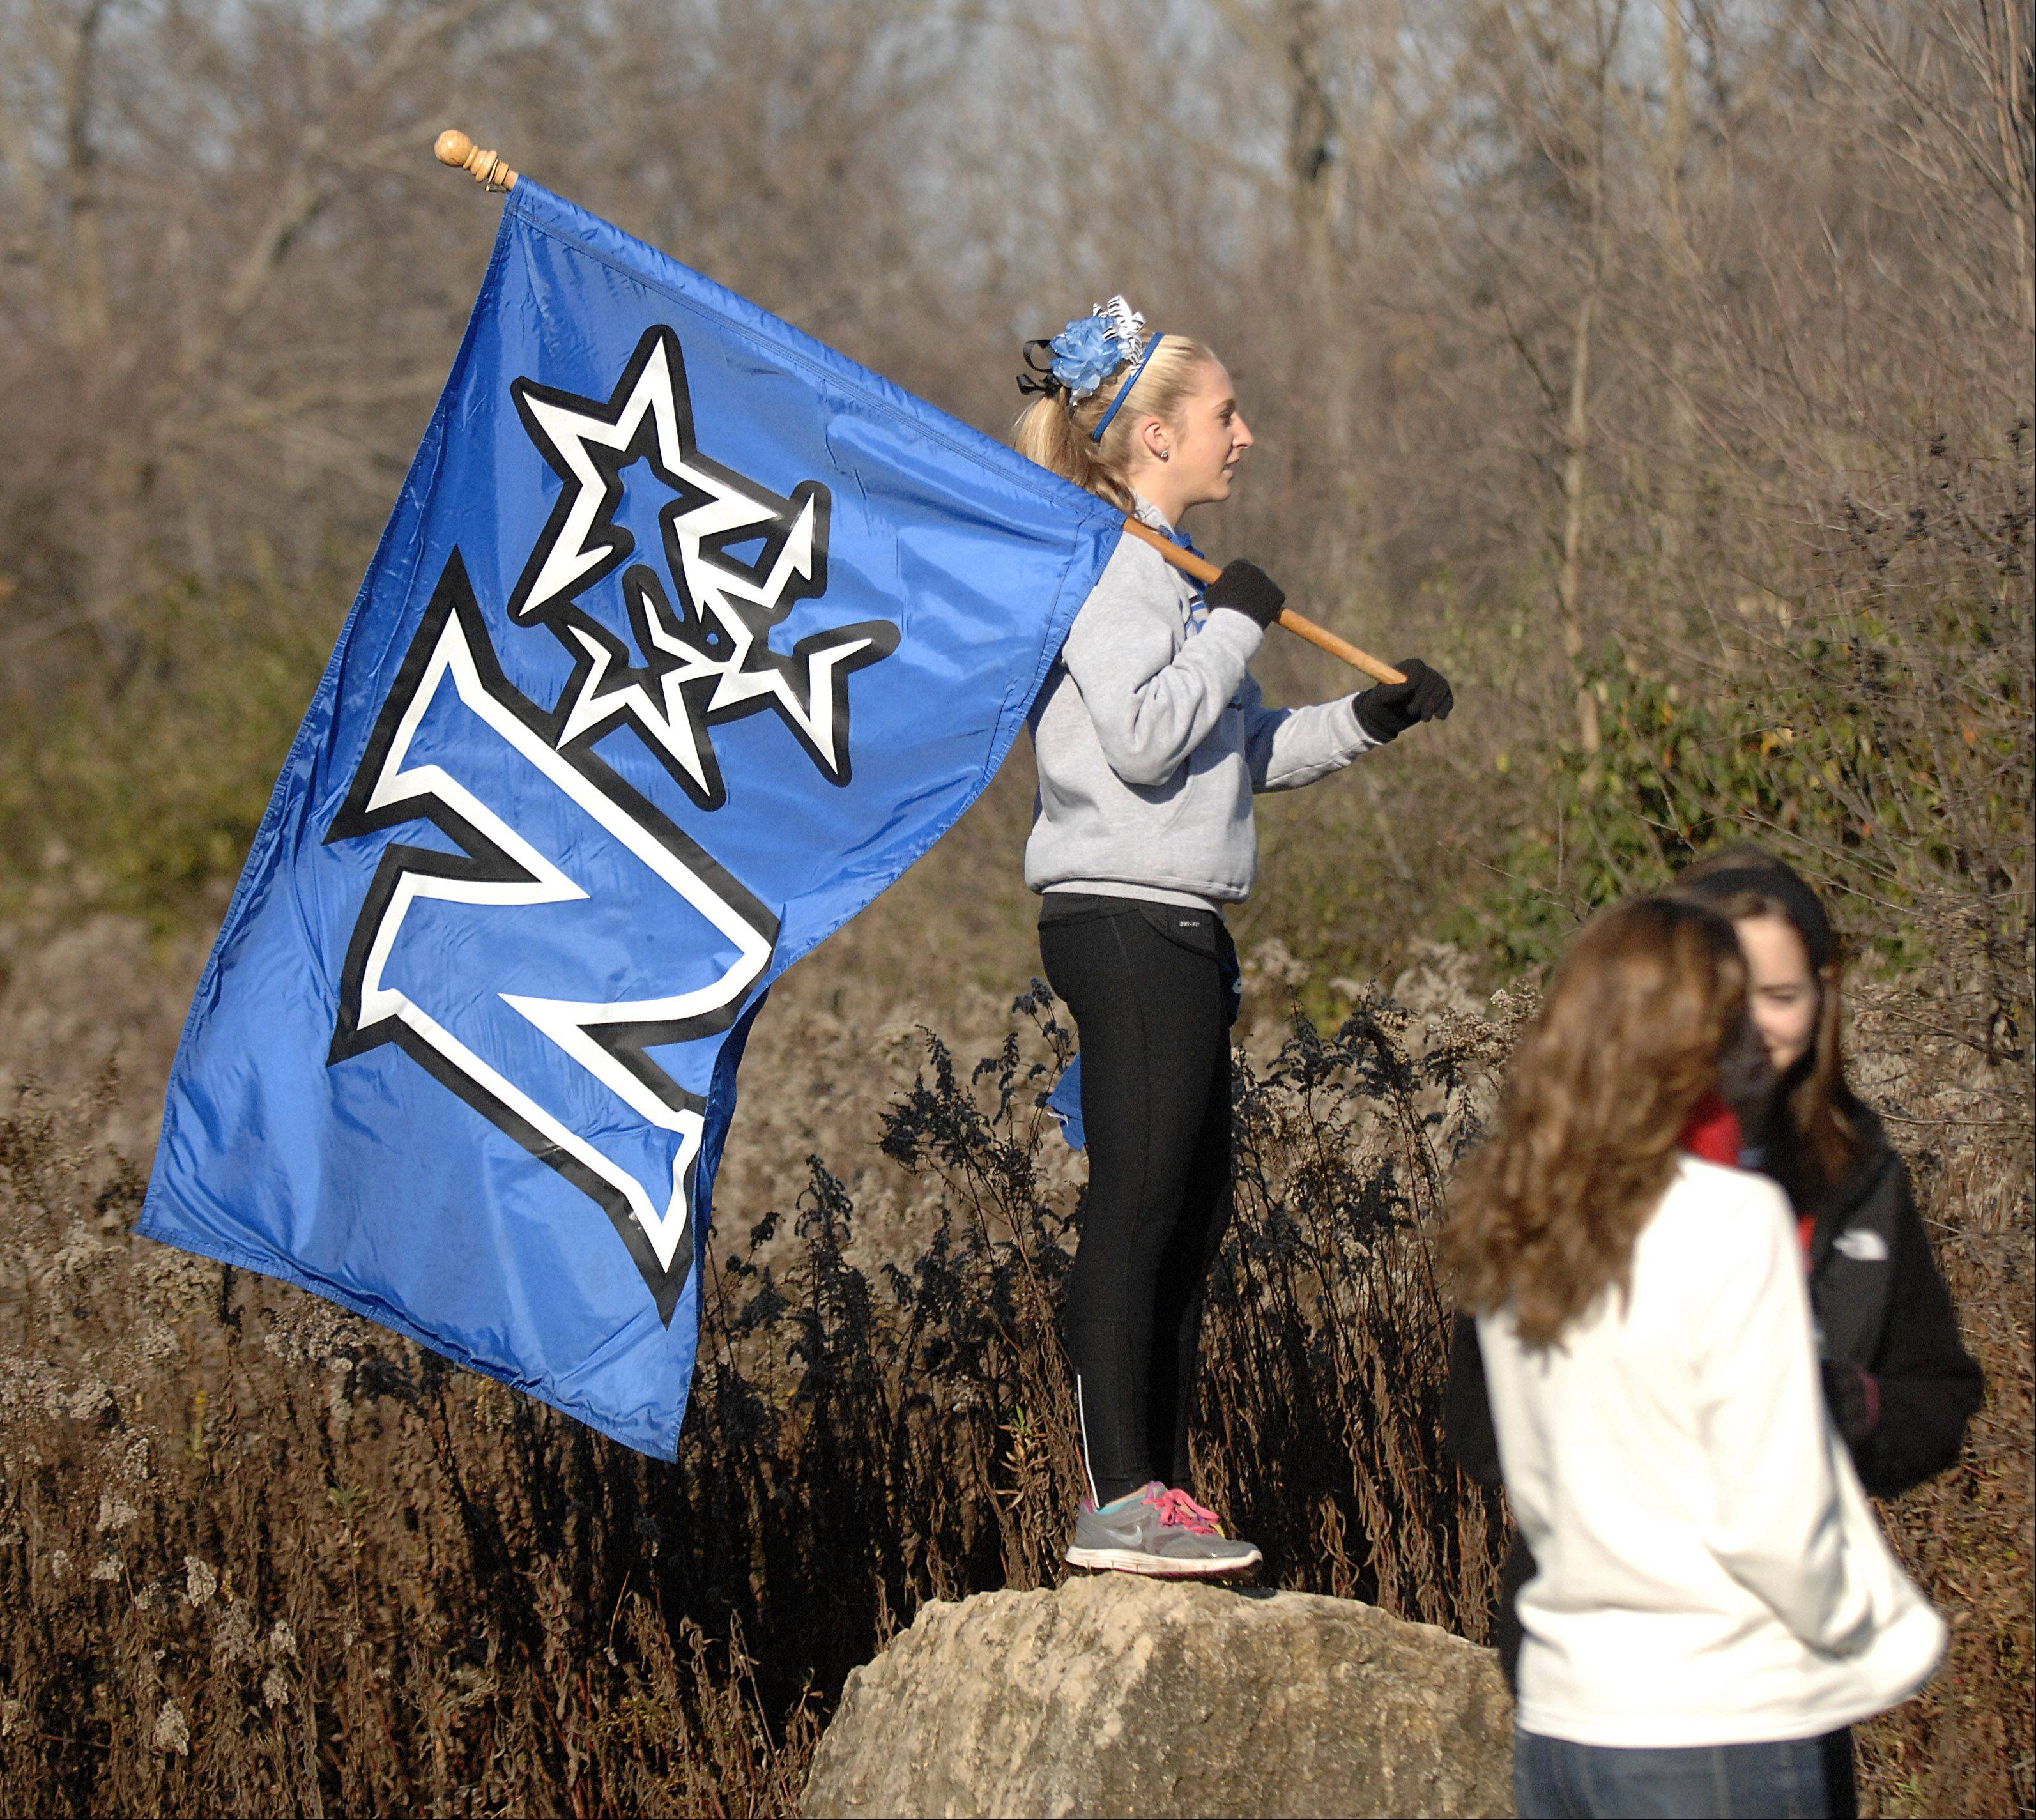 A St. Charles North supporter waits for the start of the girls race in the St. Charles East cross country sectional at LeRoy Oakes in St. Charles on Saturday, October 27.